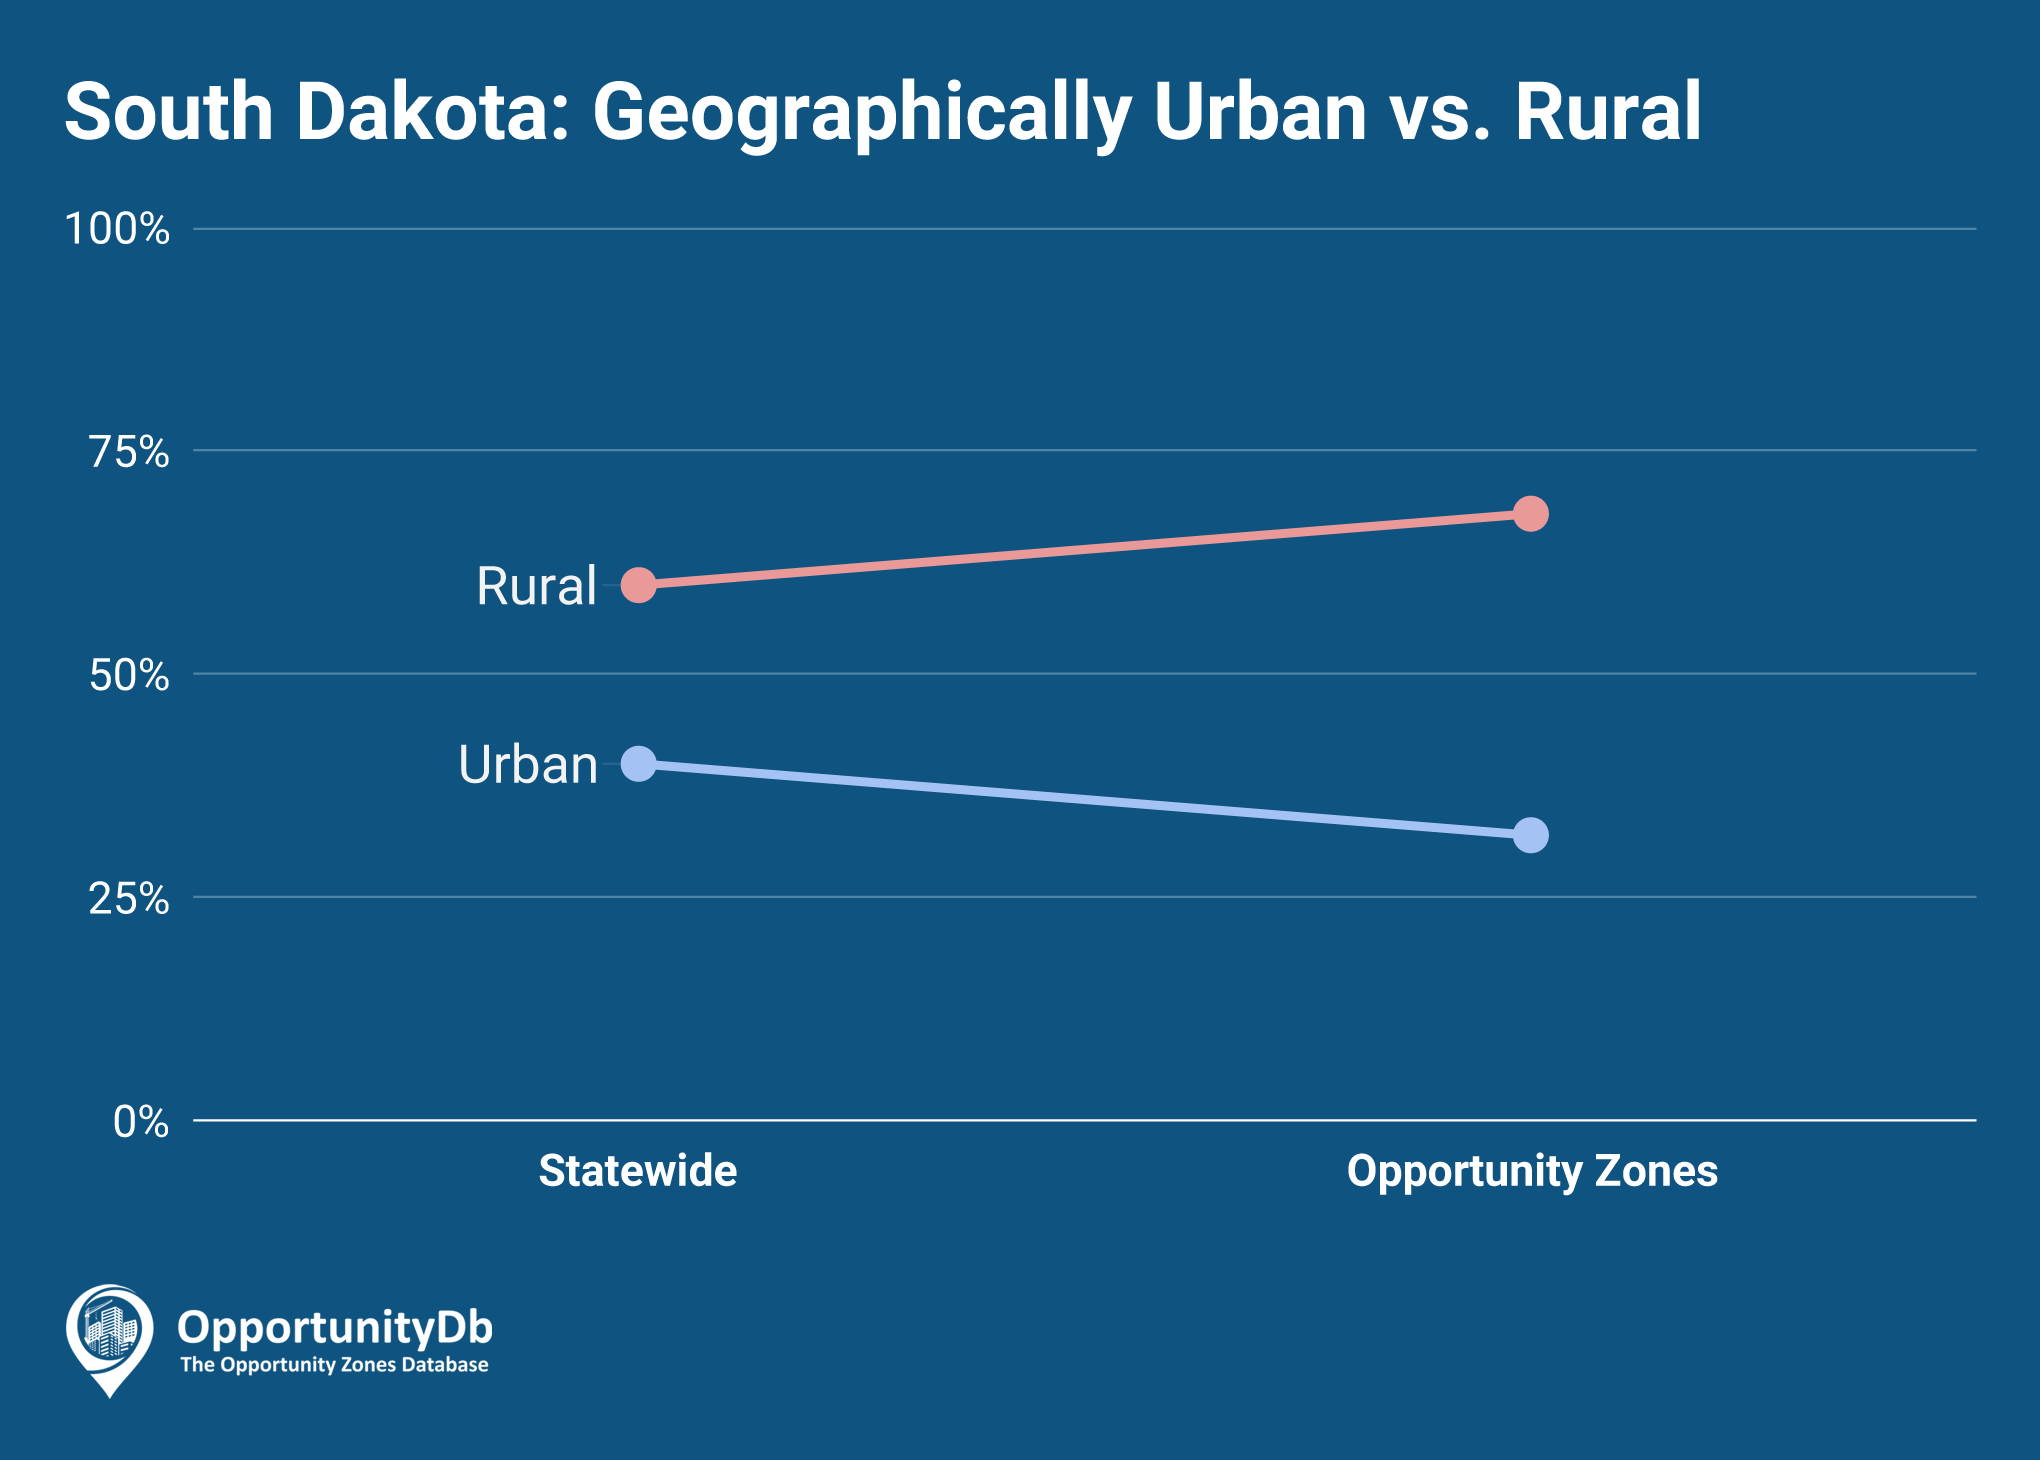 Urban vs. Rural in South Dakota Opportunity Zones